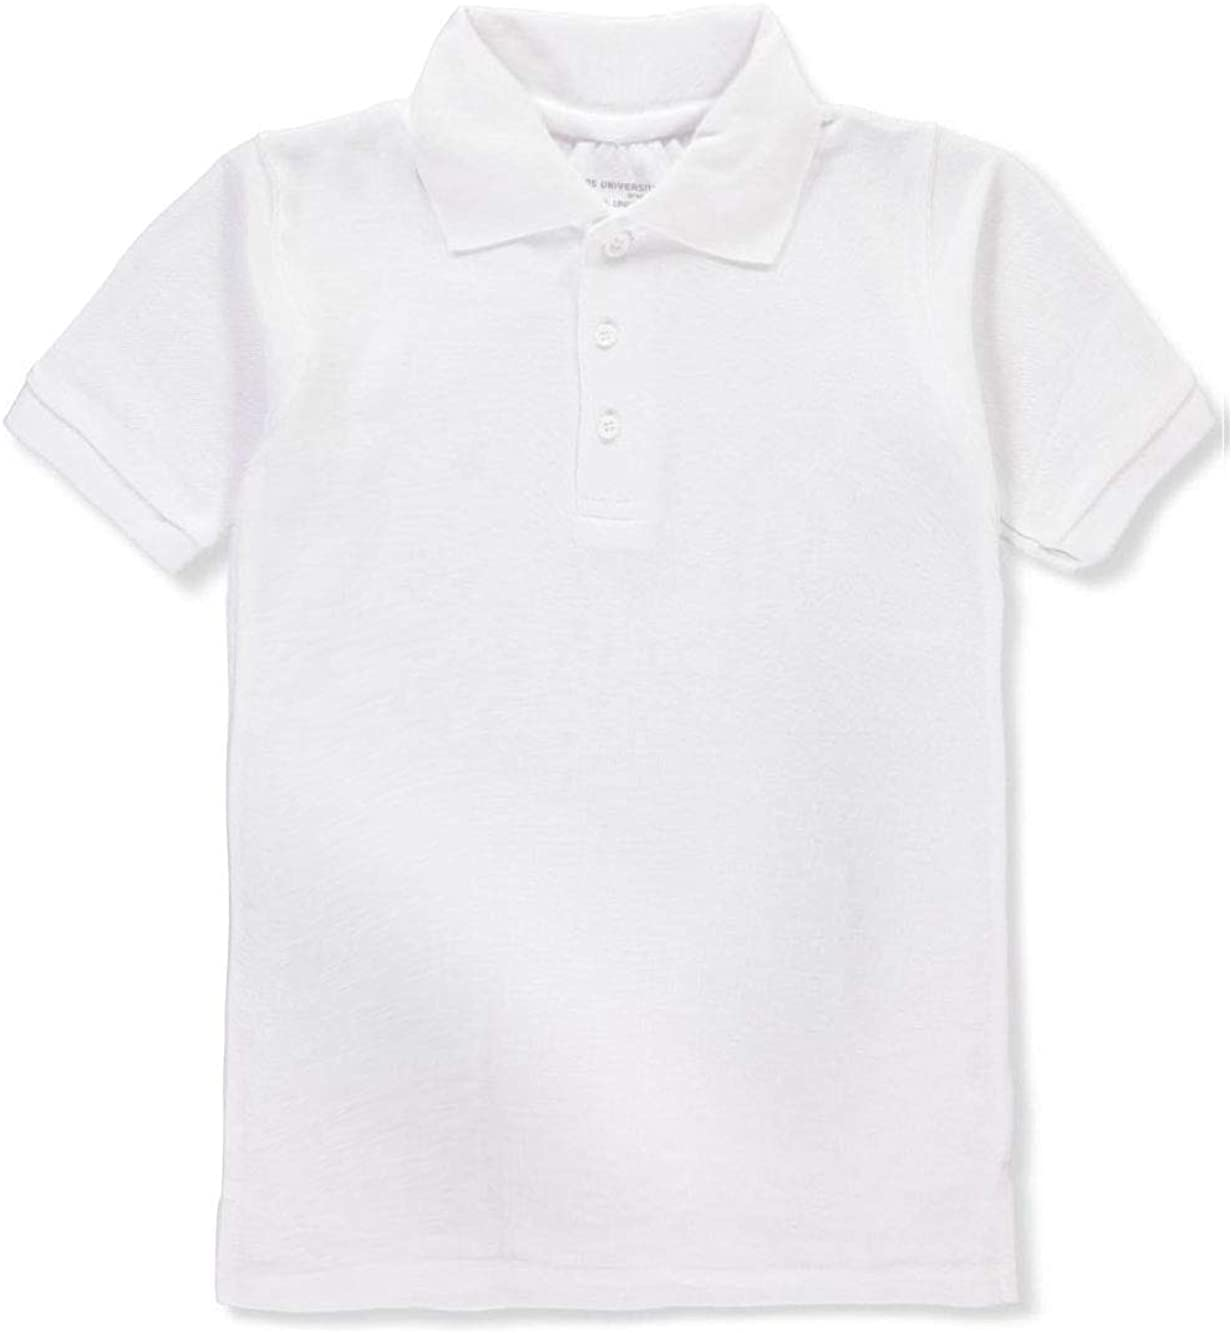 Galaxy by Harvic Kids University Youth Unisex S/S Pique Polo